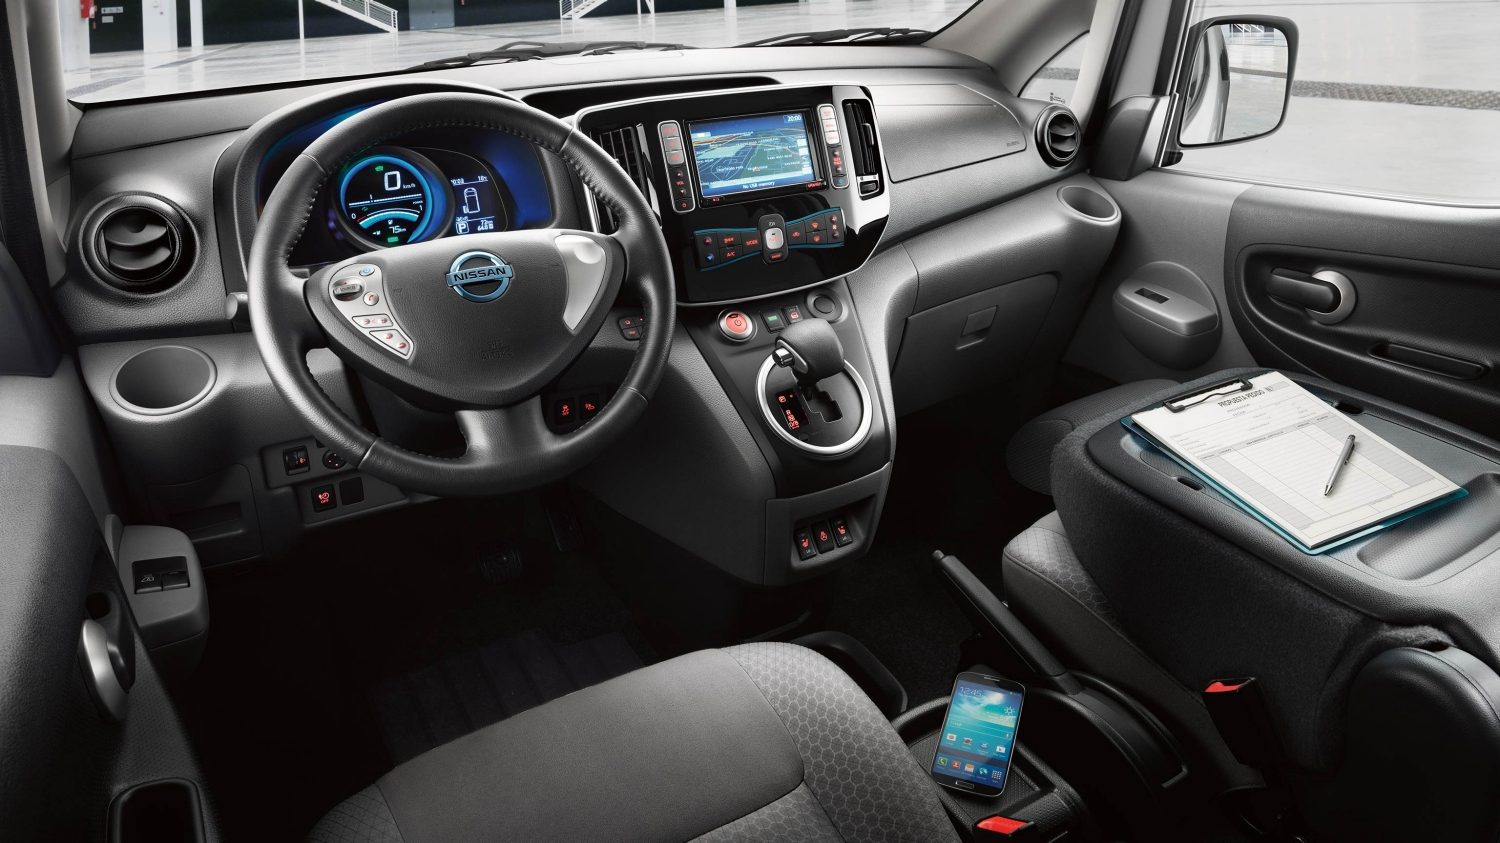 Nissan e-NV200 - Interior shot showing mobile office features